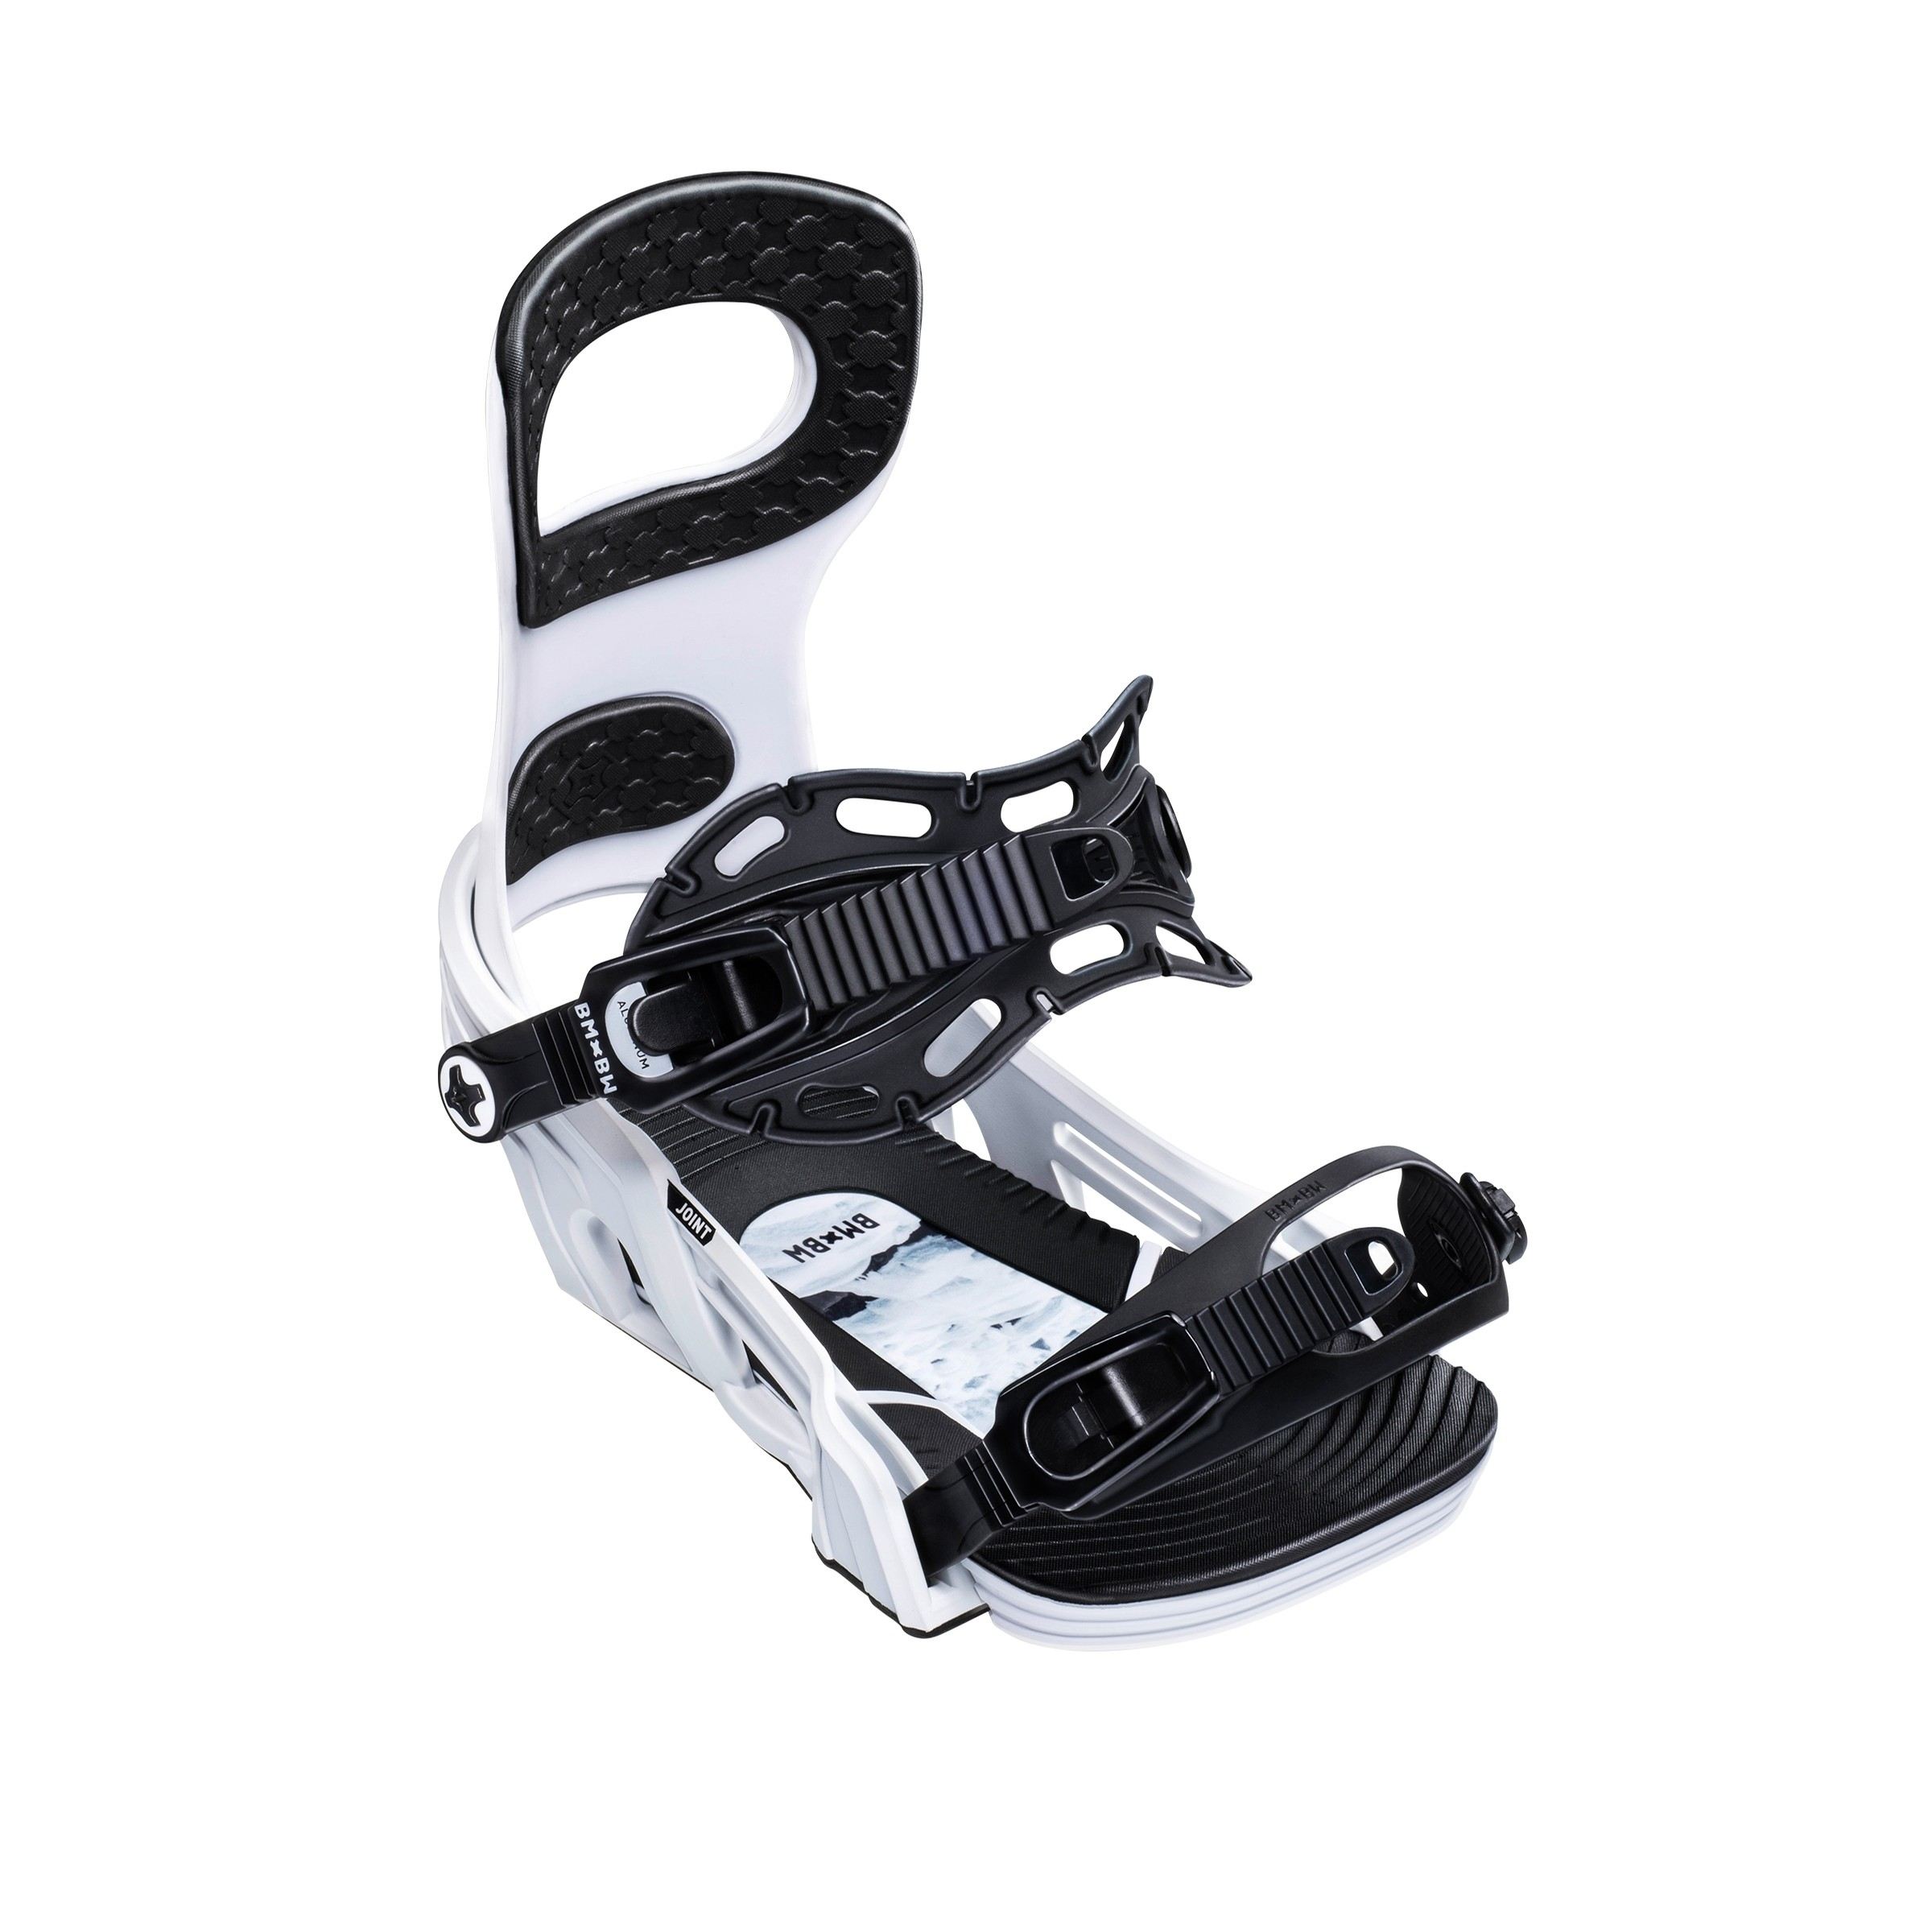 Joint Bindings 2019/20 (White)